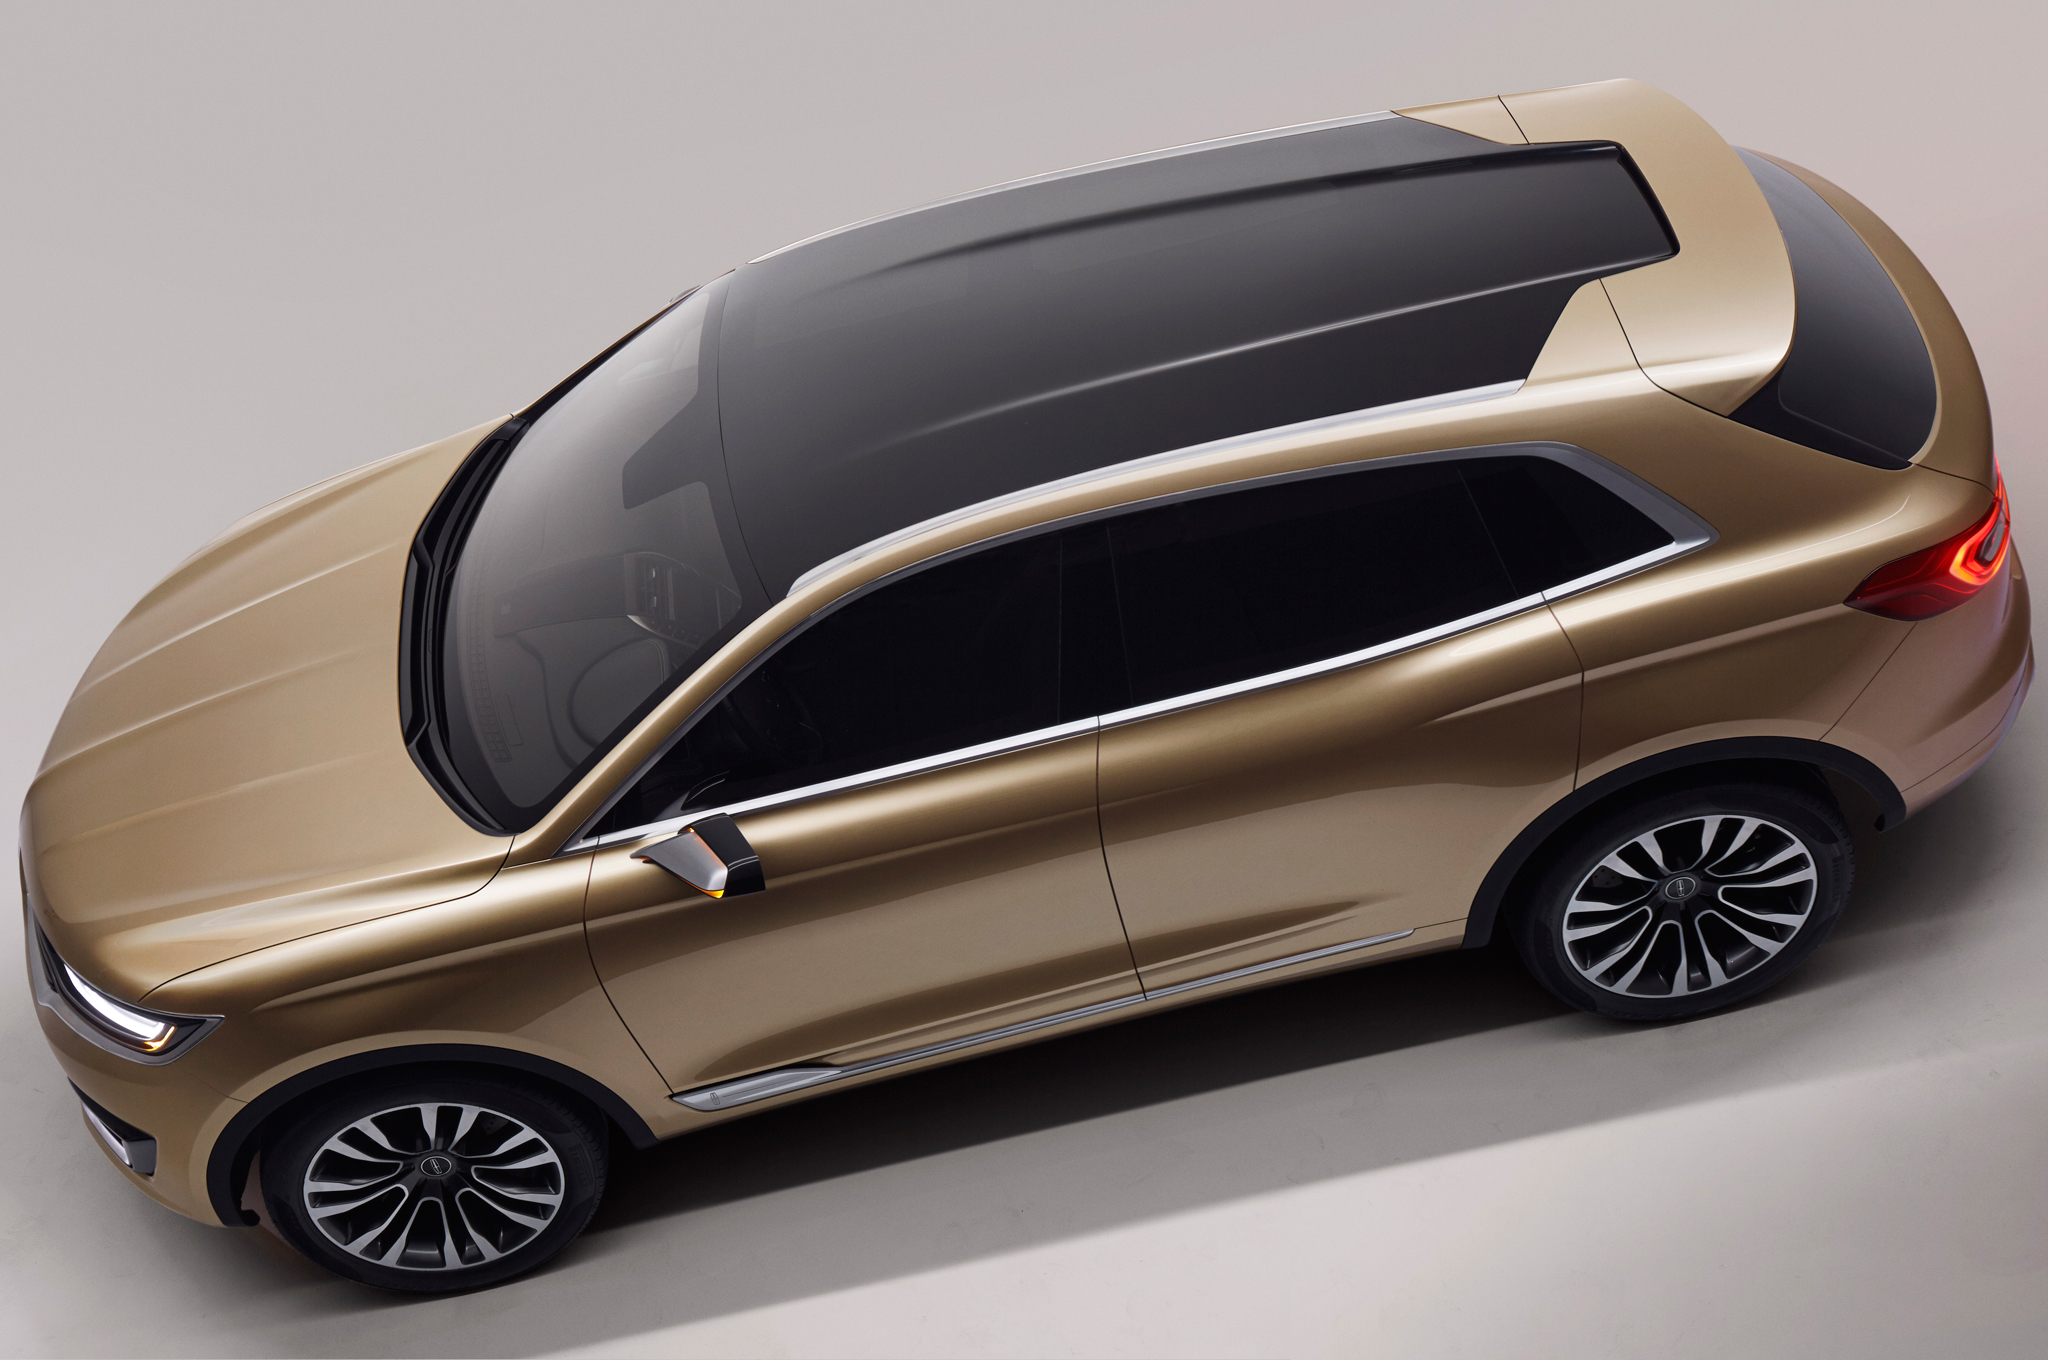 2016 Lincoln Mkx Image 1